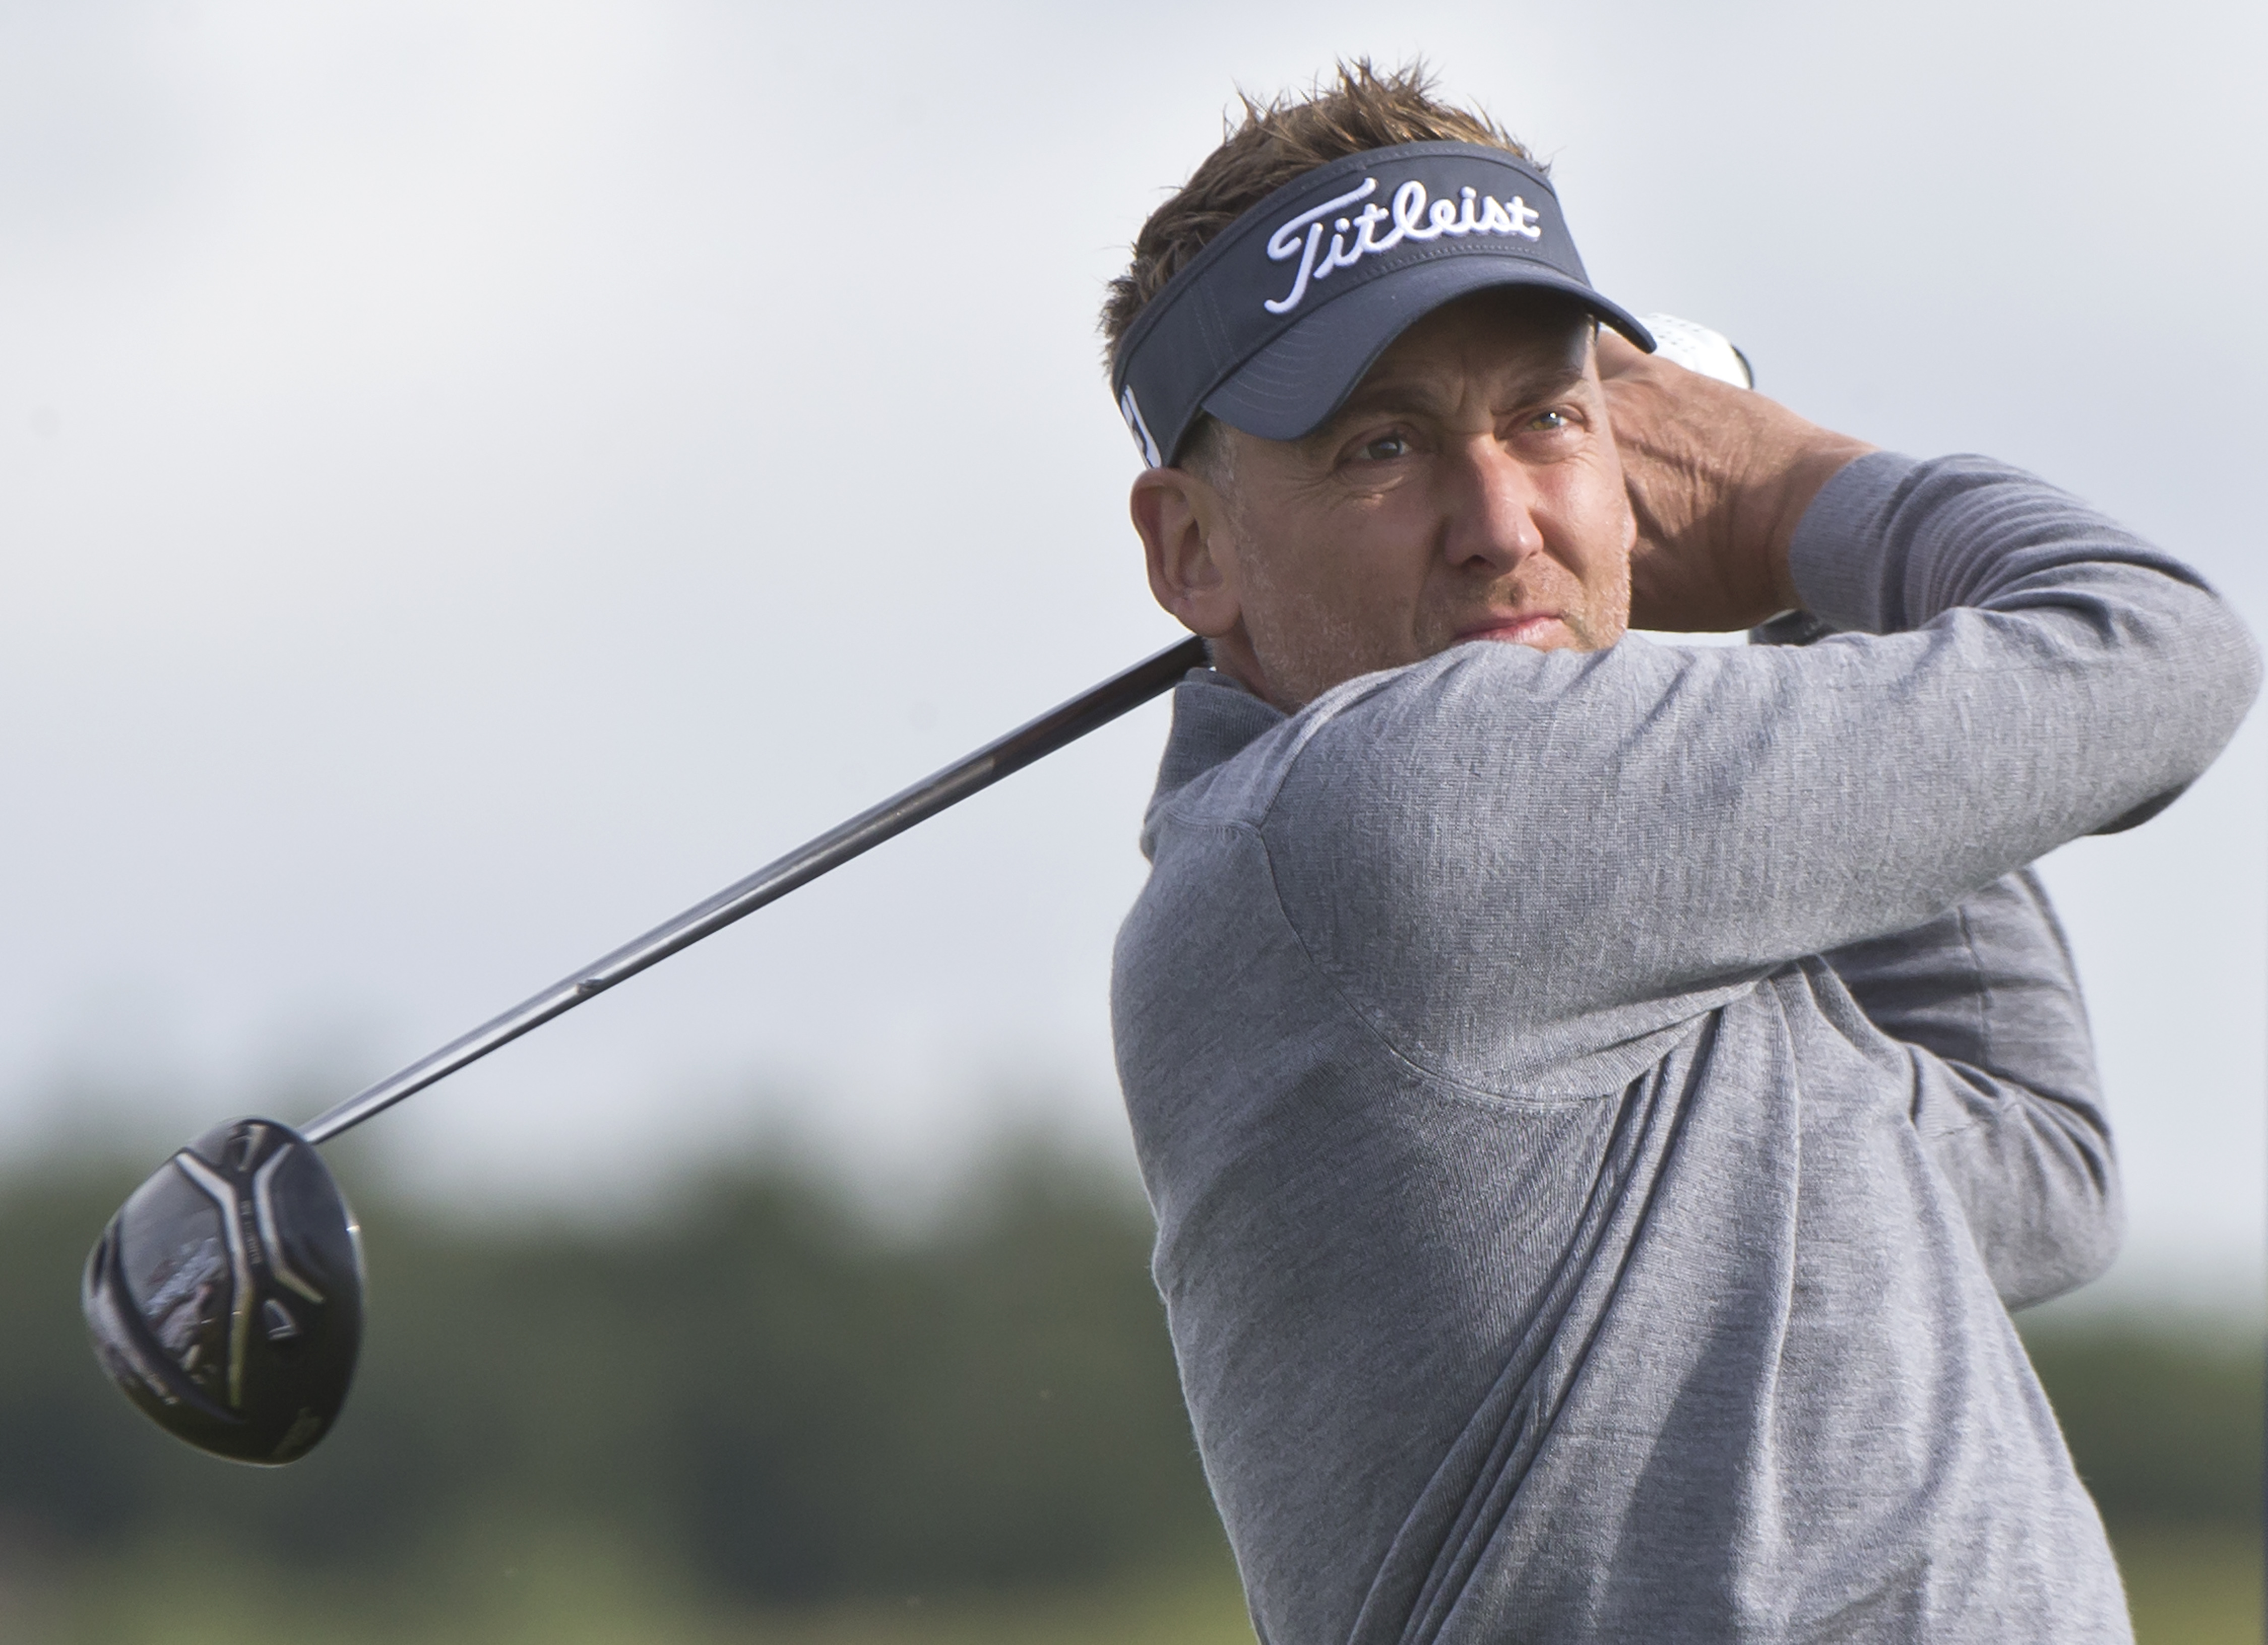 Ian Poulter of England tees off during the first day of the French Open Golf tournament at Paris National course in Guyancourt, west of Paris, France, Thursday, June 29, 2017. (AP Photo/Michel Euler)